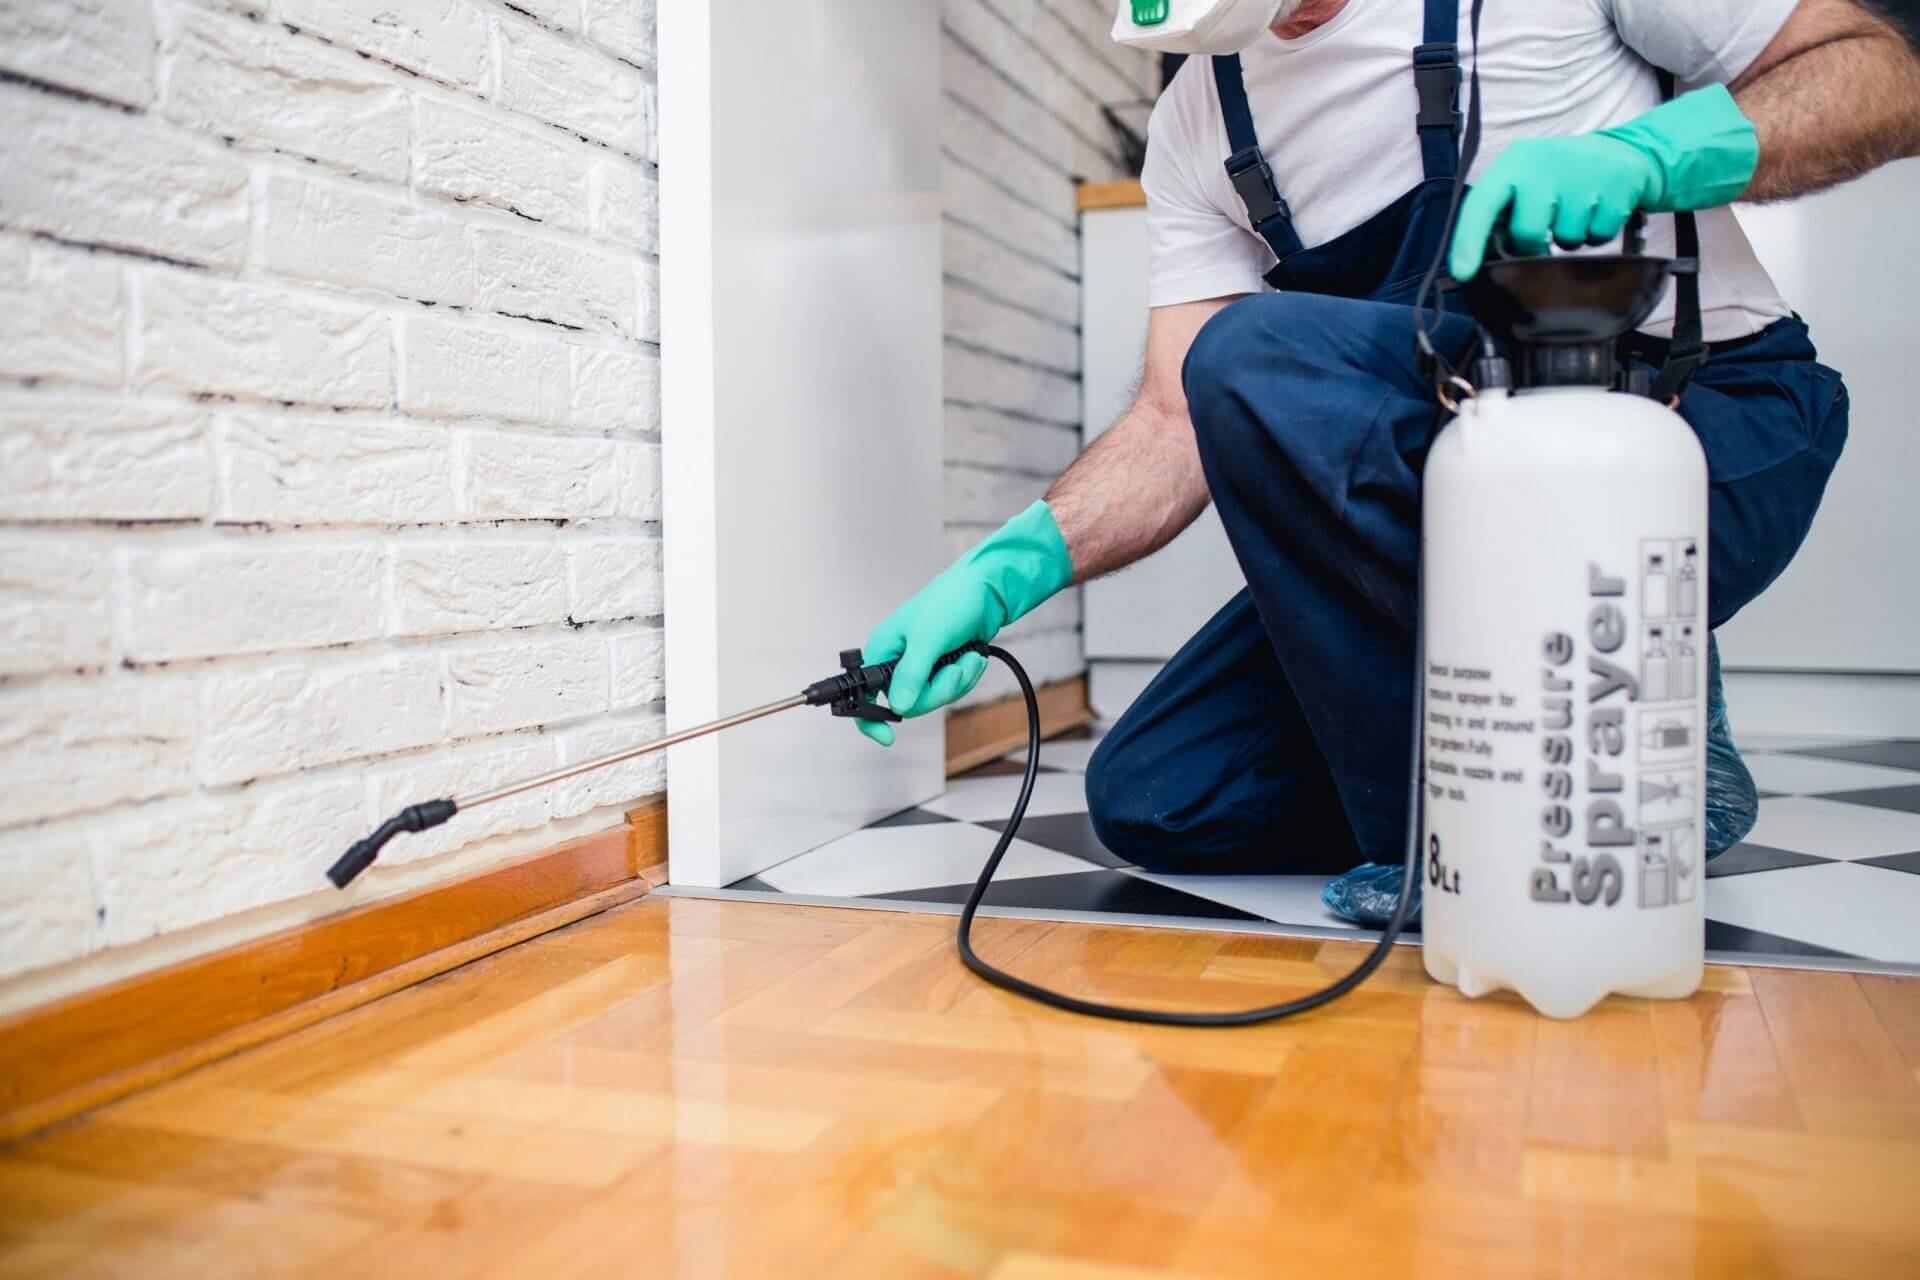 Our general pest control services target all types of pests and critters.